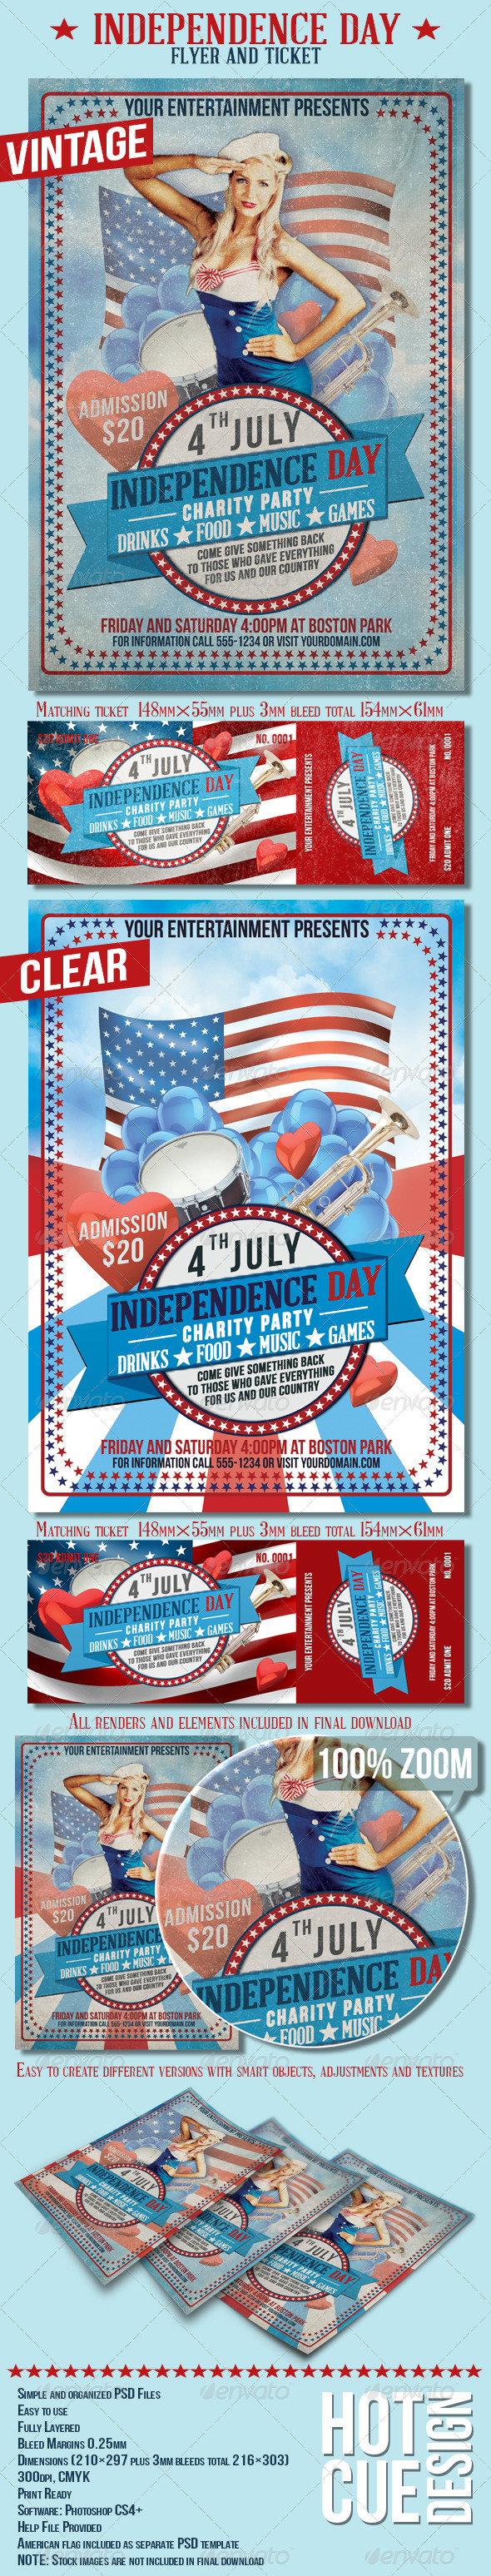 GraphicRiver Independence Day Flyer And Ticket 7776010